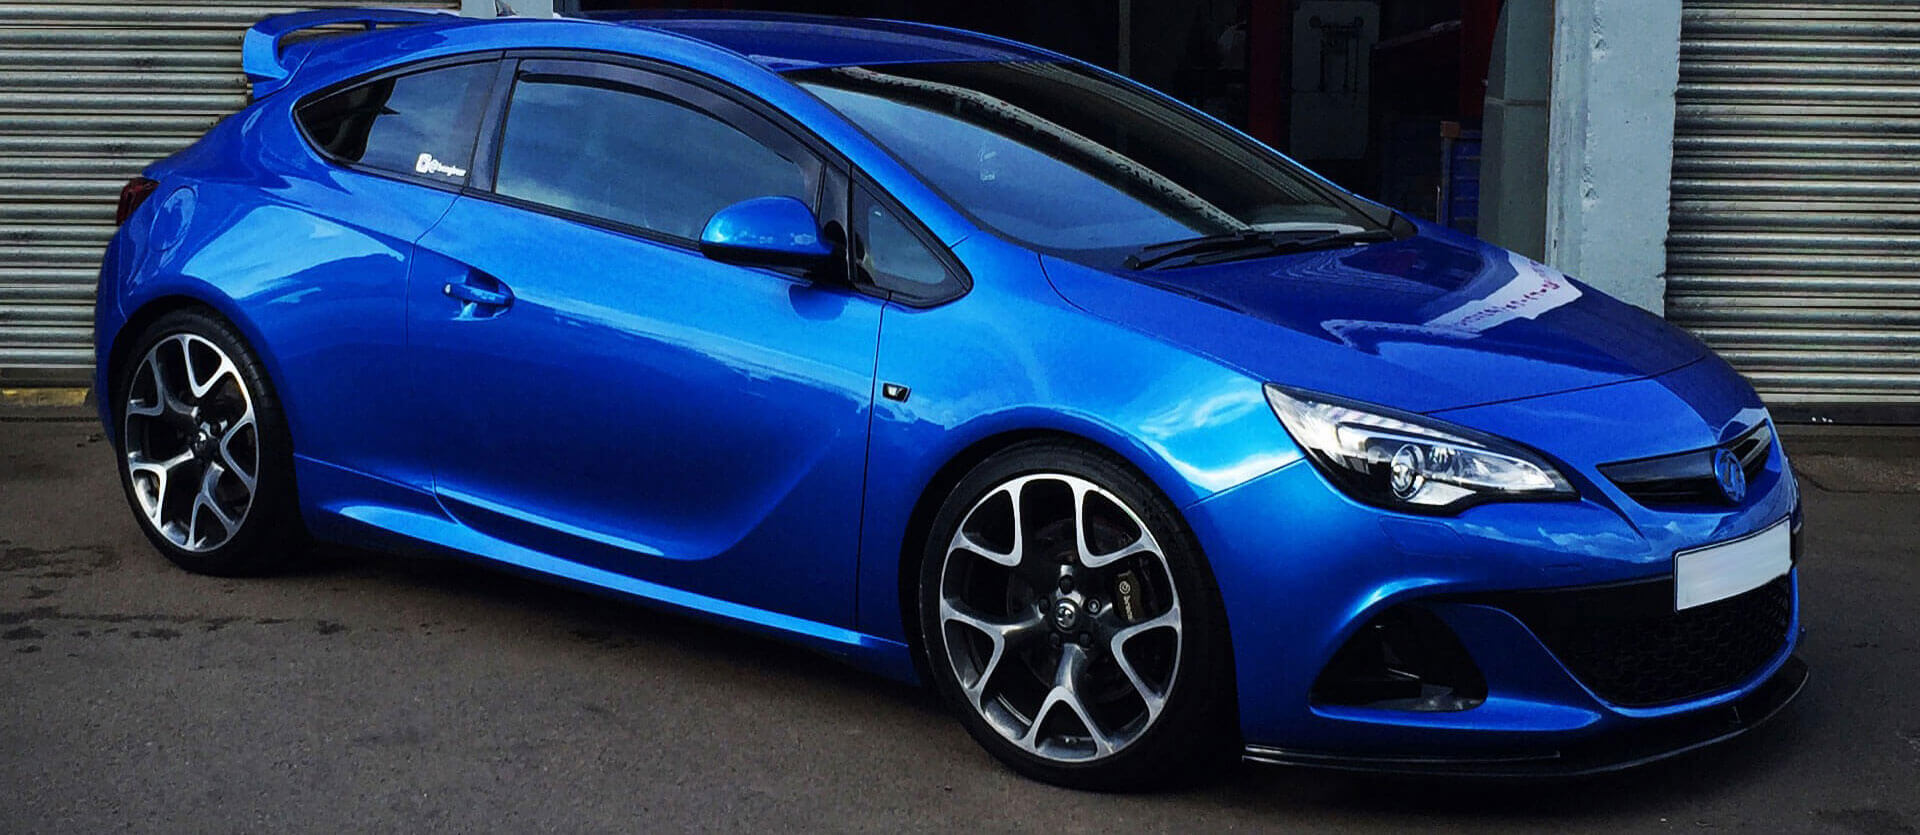 An image of a blue car outside the Griffin Autos car garage.